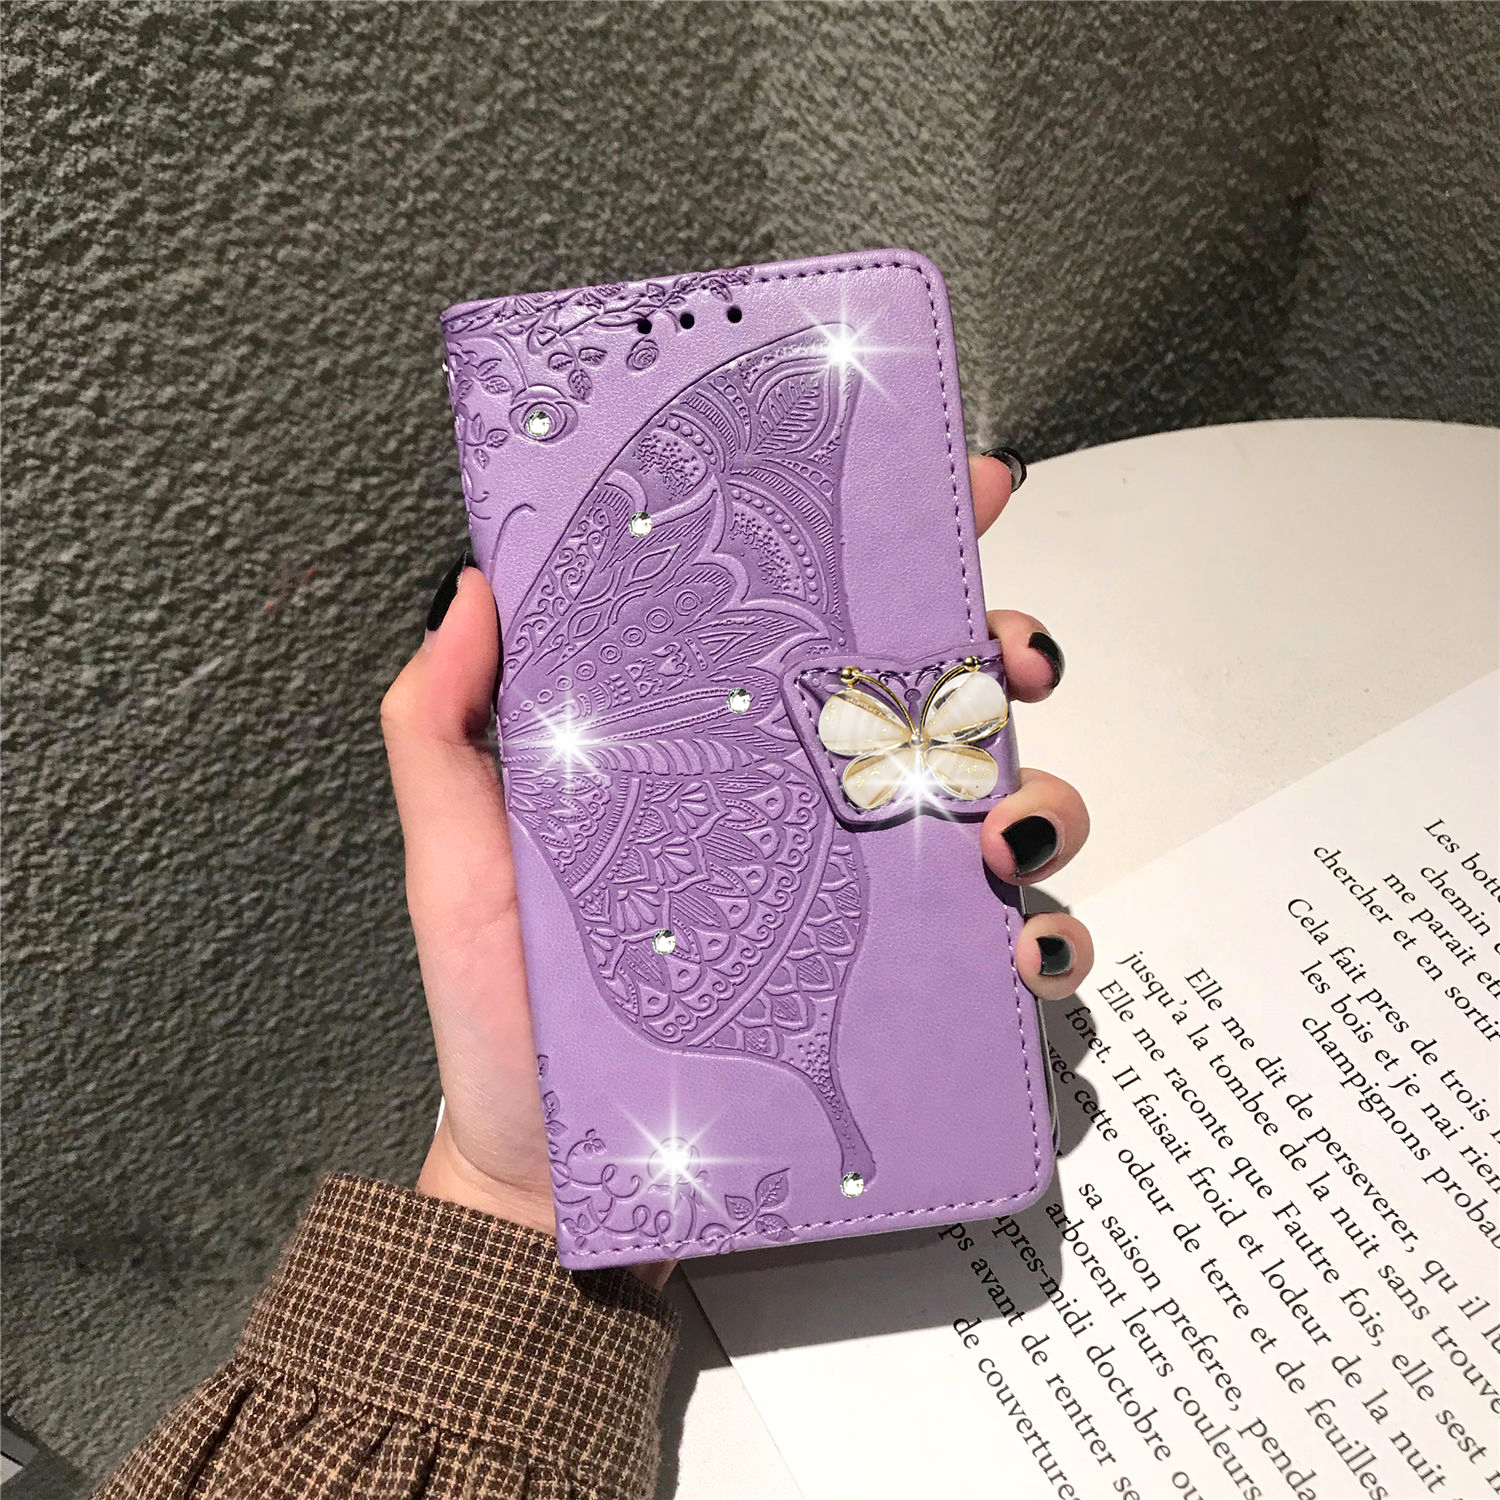 Glitter Leather <font><b>Case</b></font> for <font><b>Huawei</b></font> Y5 Y6 Y7 Y9 Prime Pro Lite 2019 Y3 <font><b>2018</b></font> Rhinestone Flip Book <font><b>Case</b></font> for <font><b>Huawei</b></font> <font><b>Y</b></font> <font><b>5</b></font> 6 7 9 Prime image